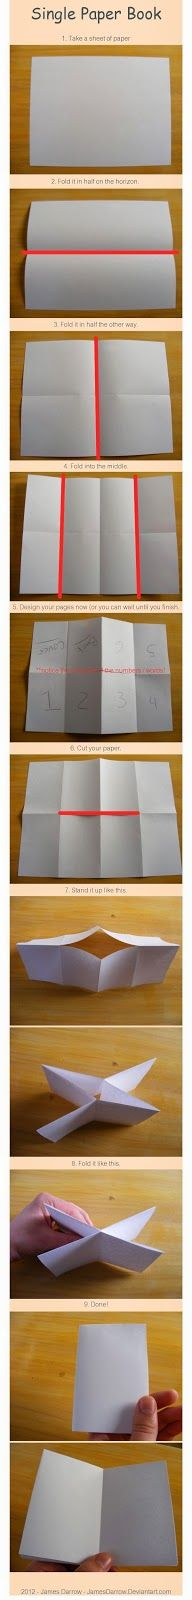 motivational trends: How to Make a Quick and Easy 8 Page Mini-Book From One single Page